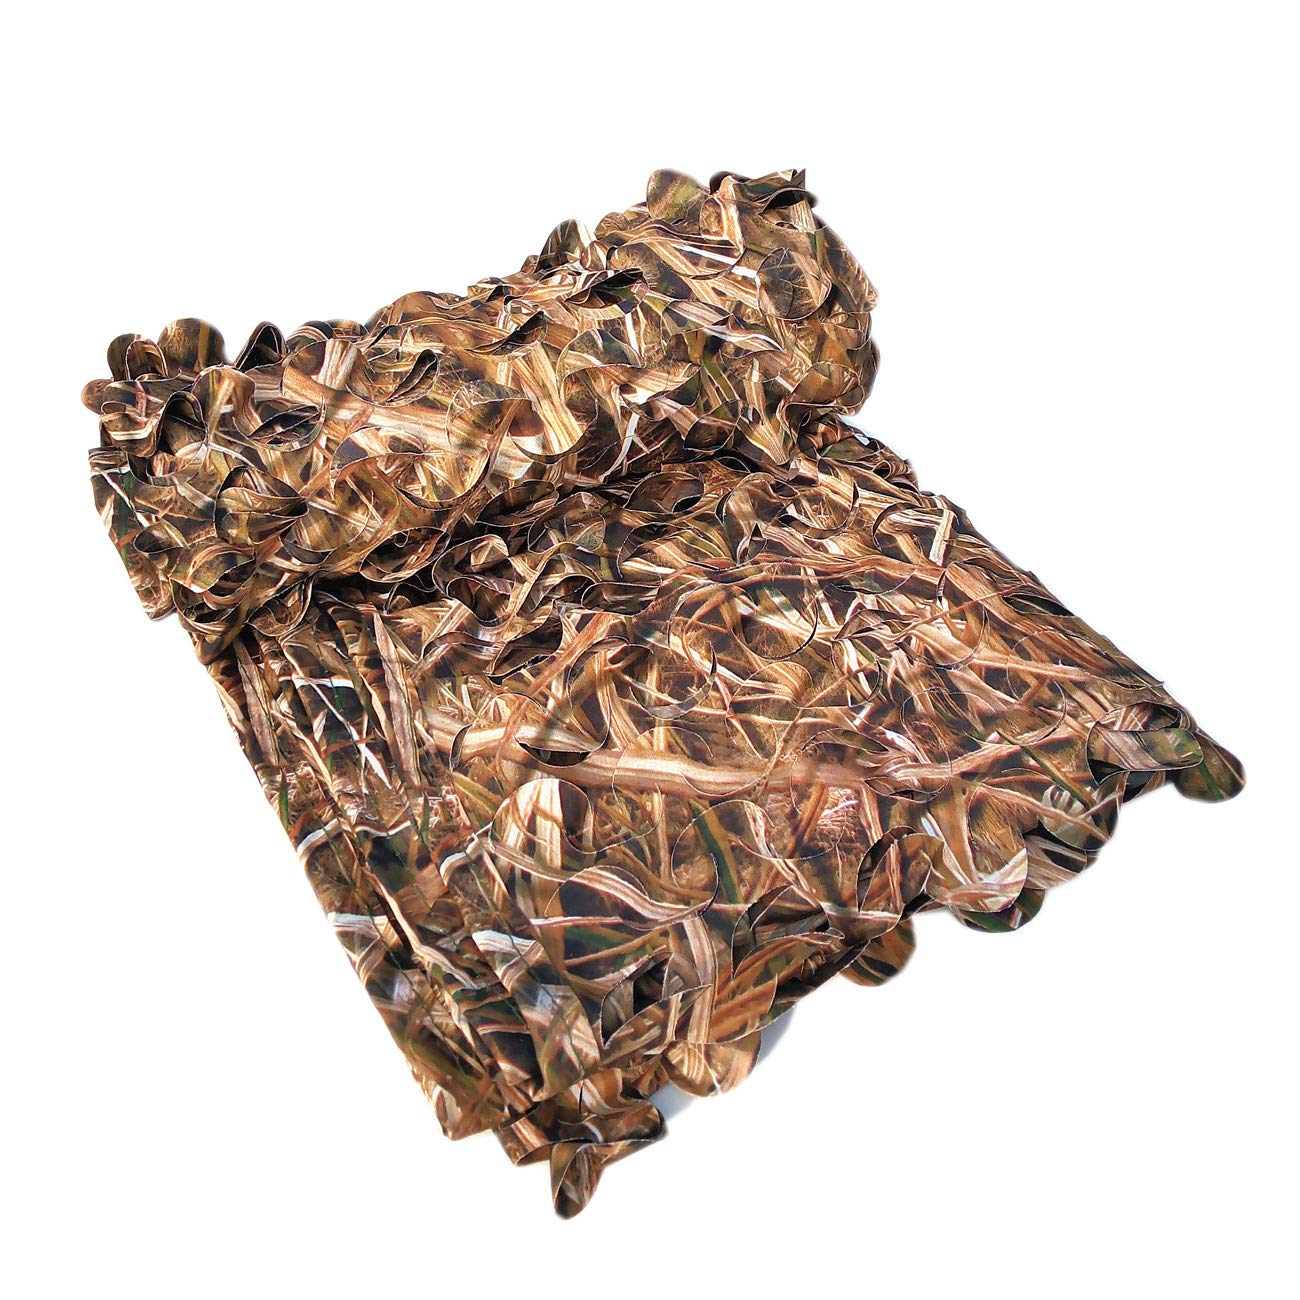 XAMAWA Camouflage Netting, 300D Durable Camo Net Blinds Great for Camping Shooting Hunting(5ftx10ft/1.5mx3m)